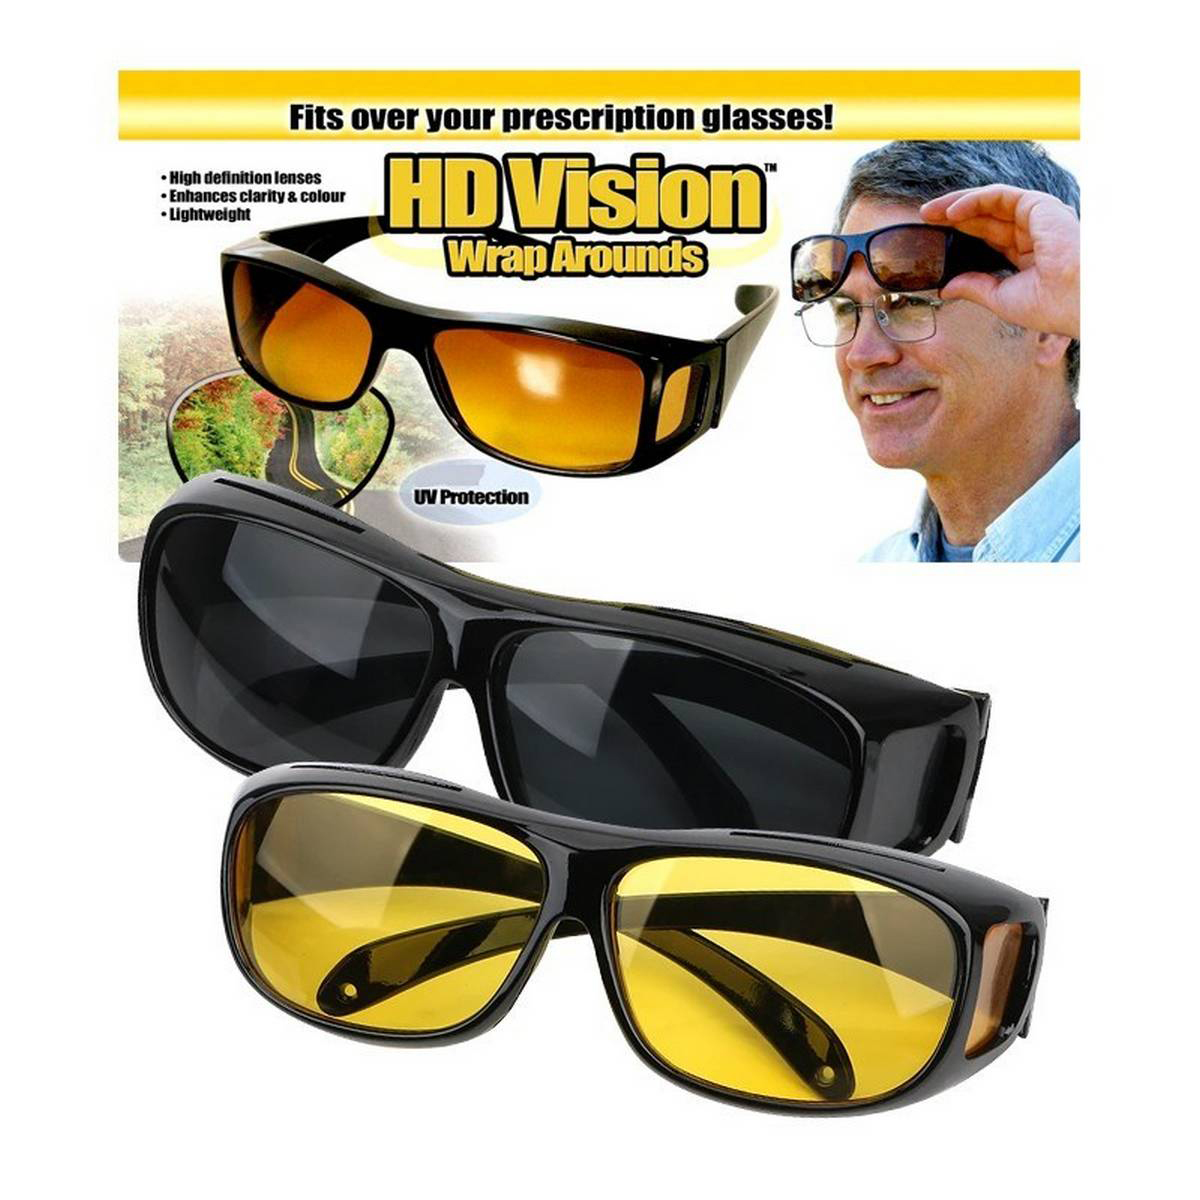 HD Vision Glasses Over Wrap Arounds Sunglasses Men Night Driving UV-400 Protective Eye-wear Goggles Driver Safety Sun Glasses